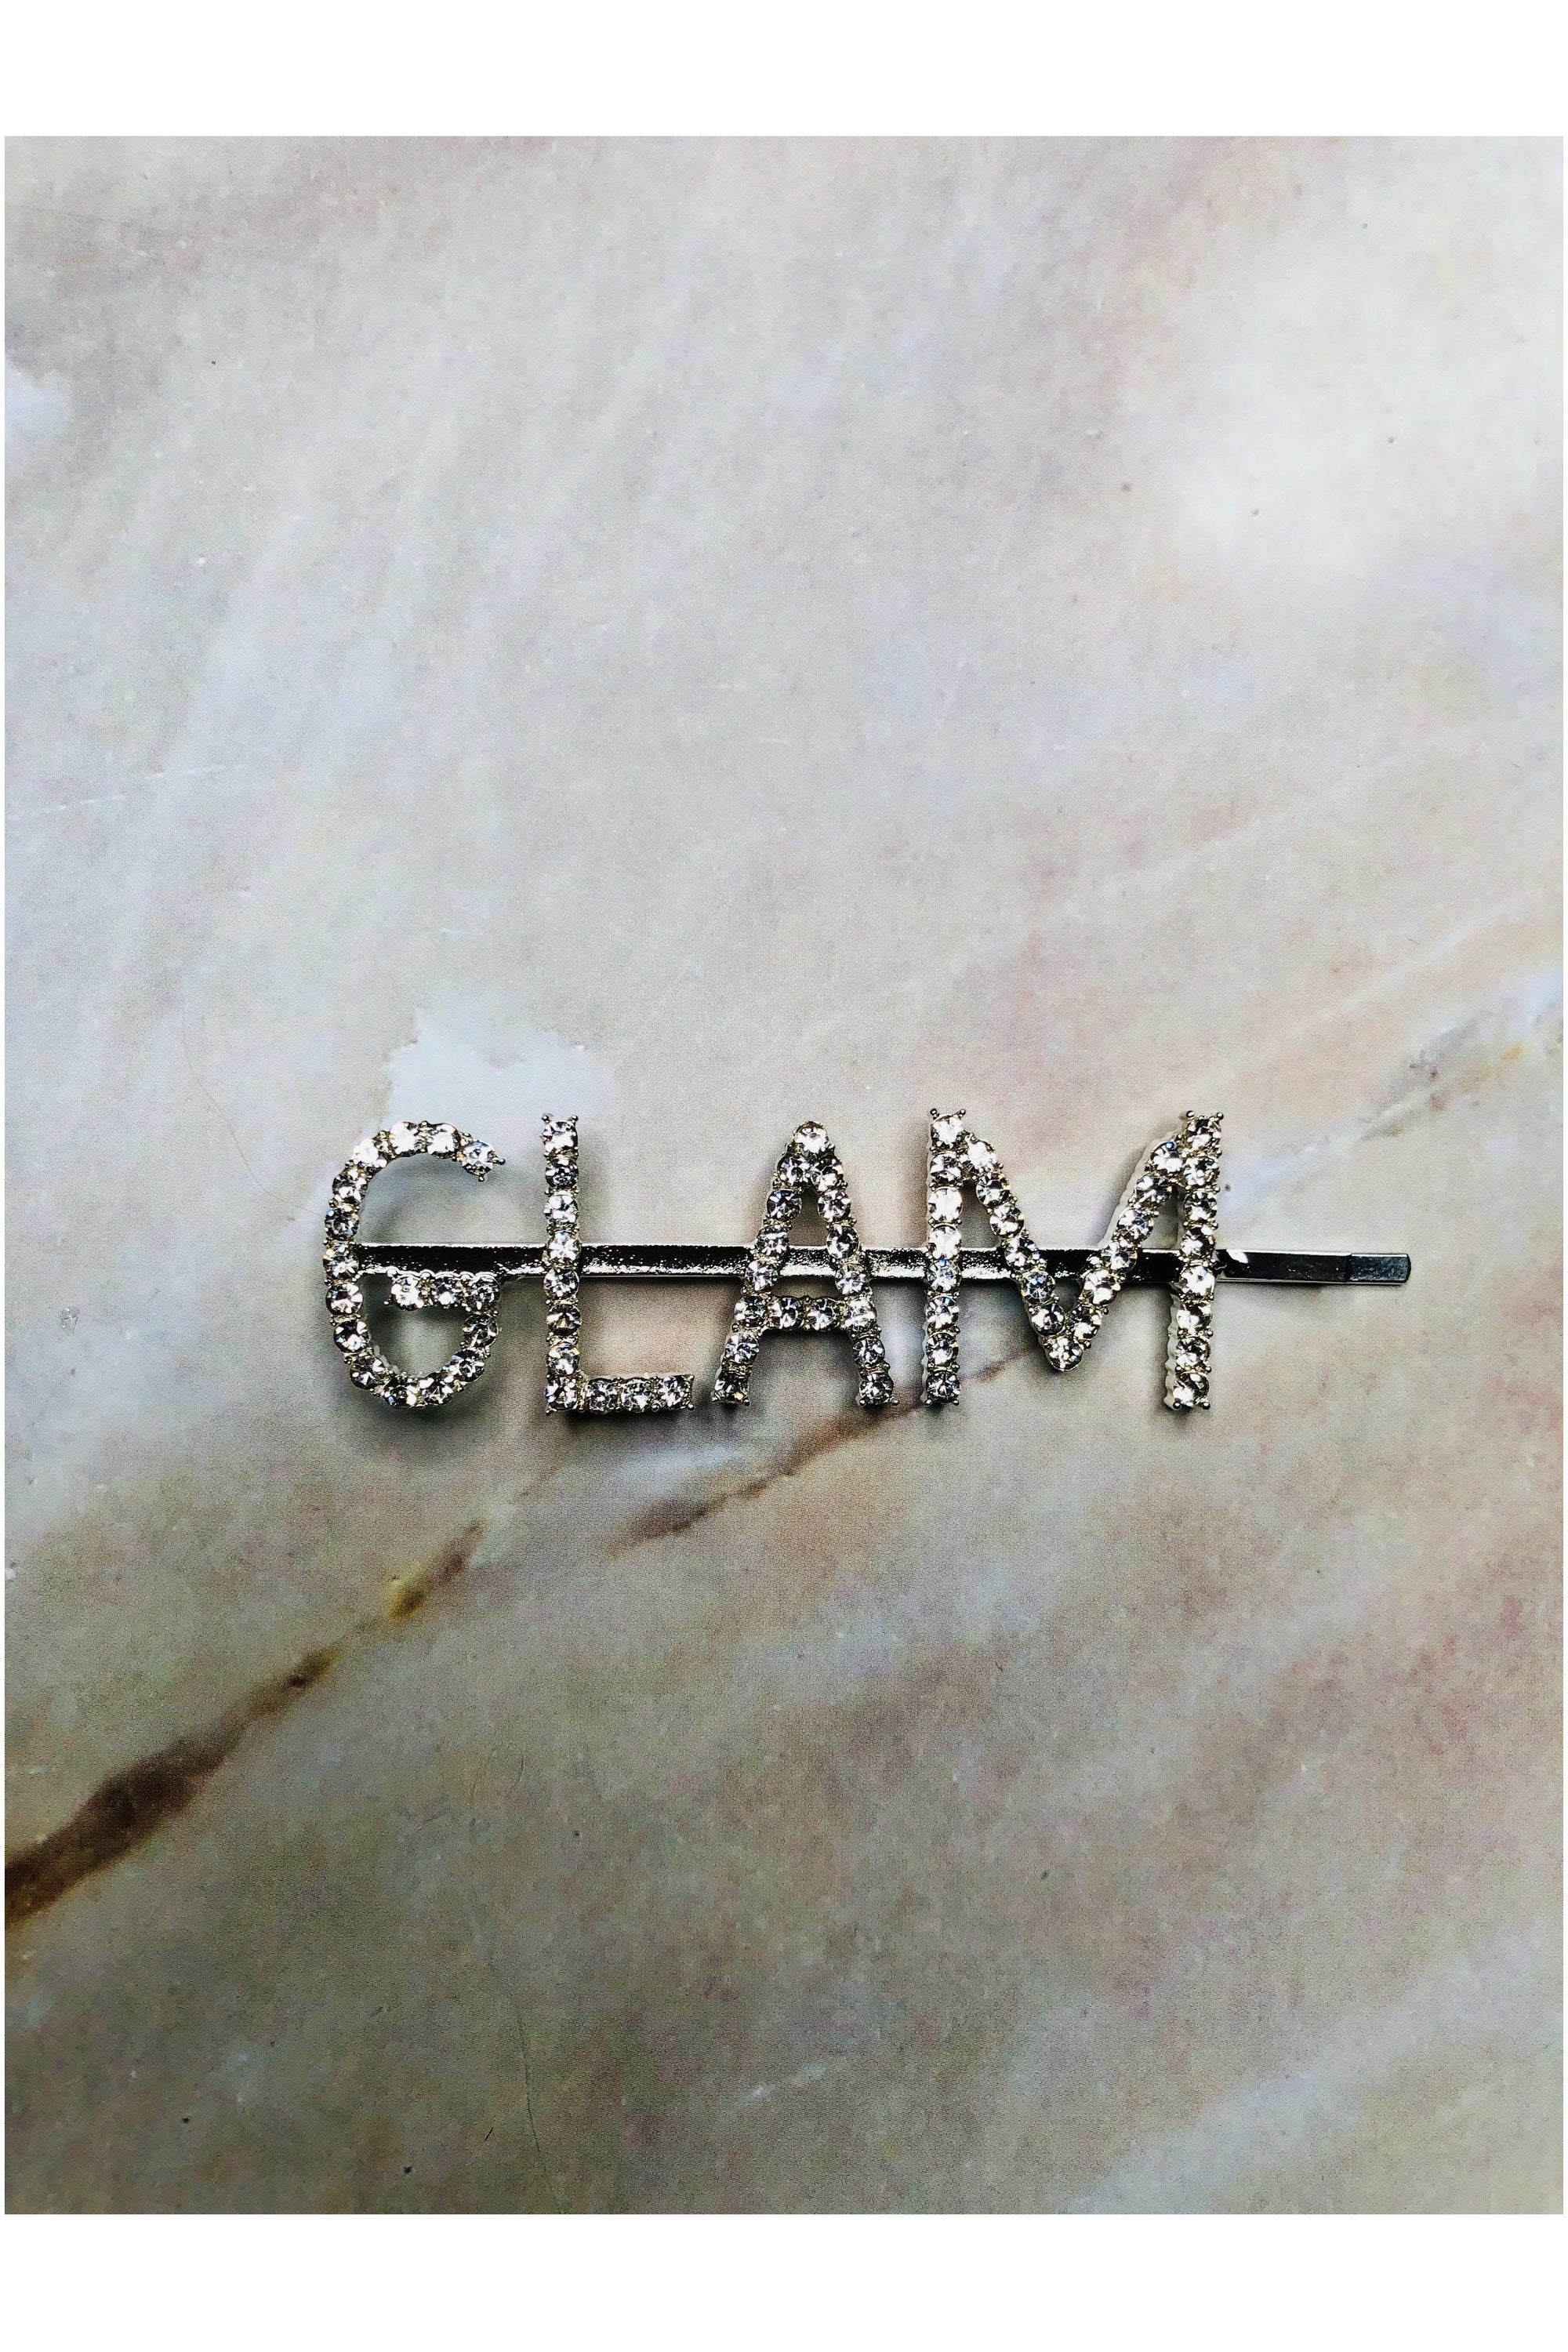 GLAM Studded Hairpin